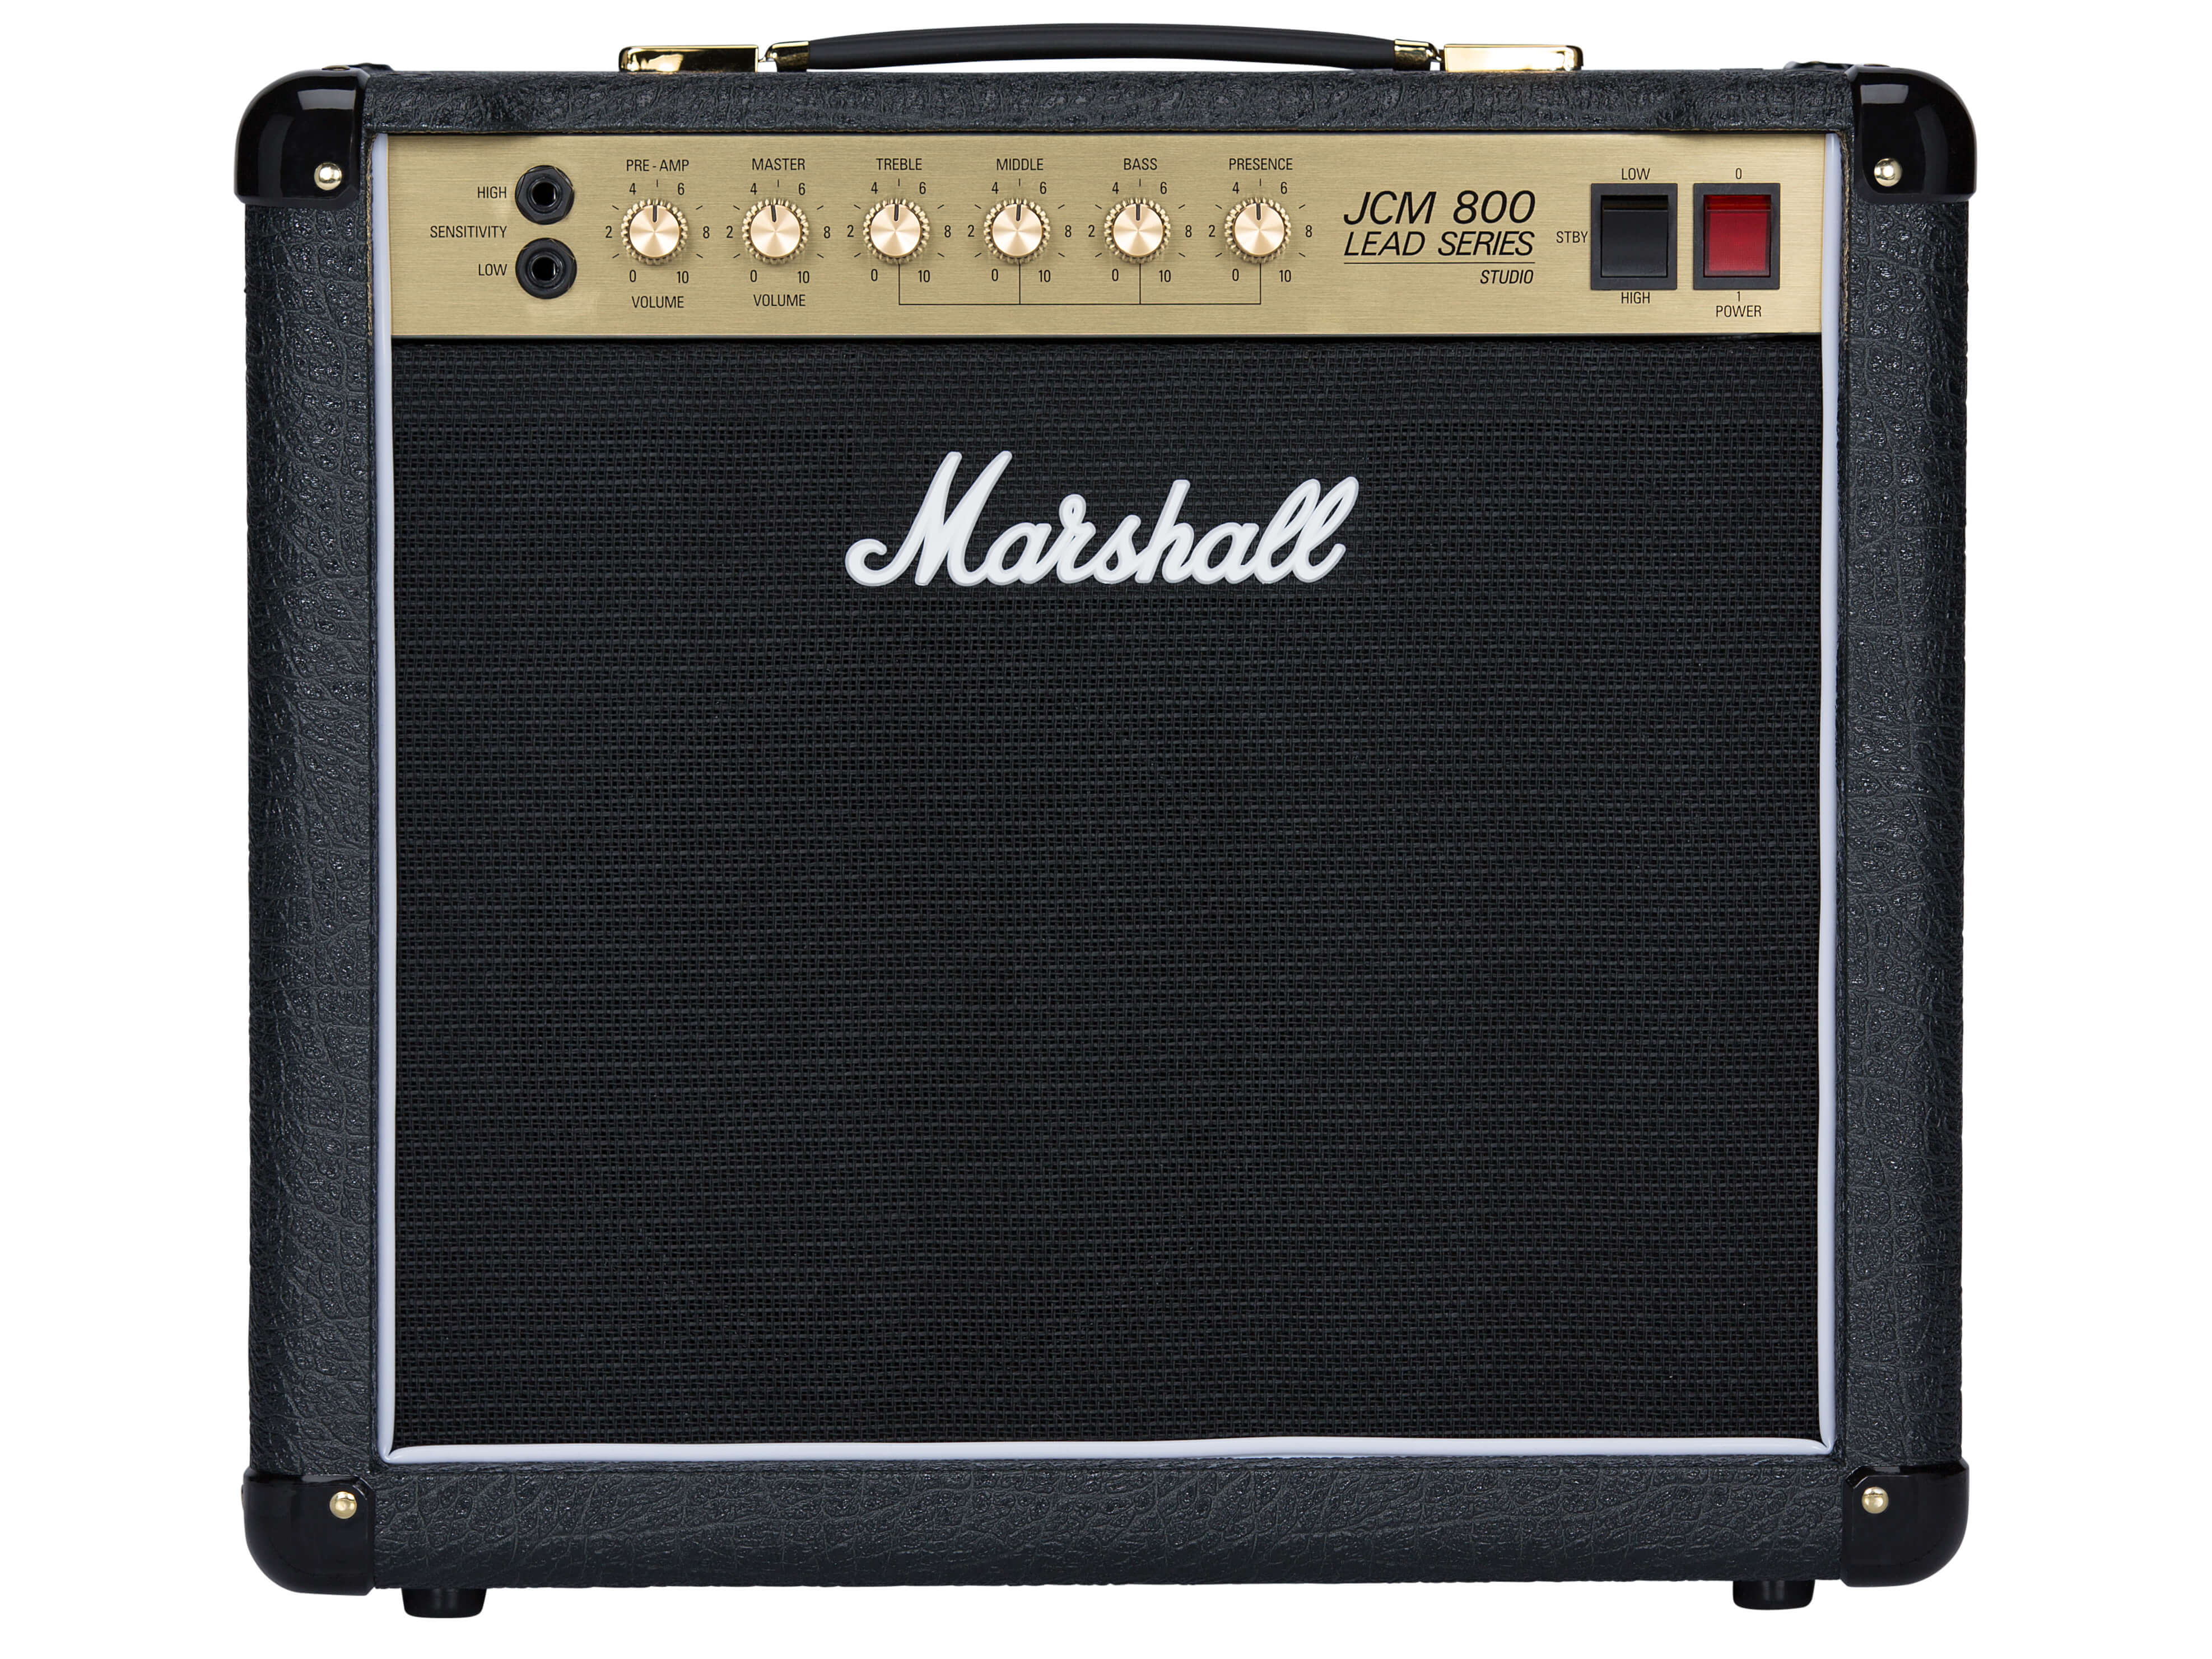 The Marshall Studio Classic Combo